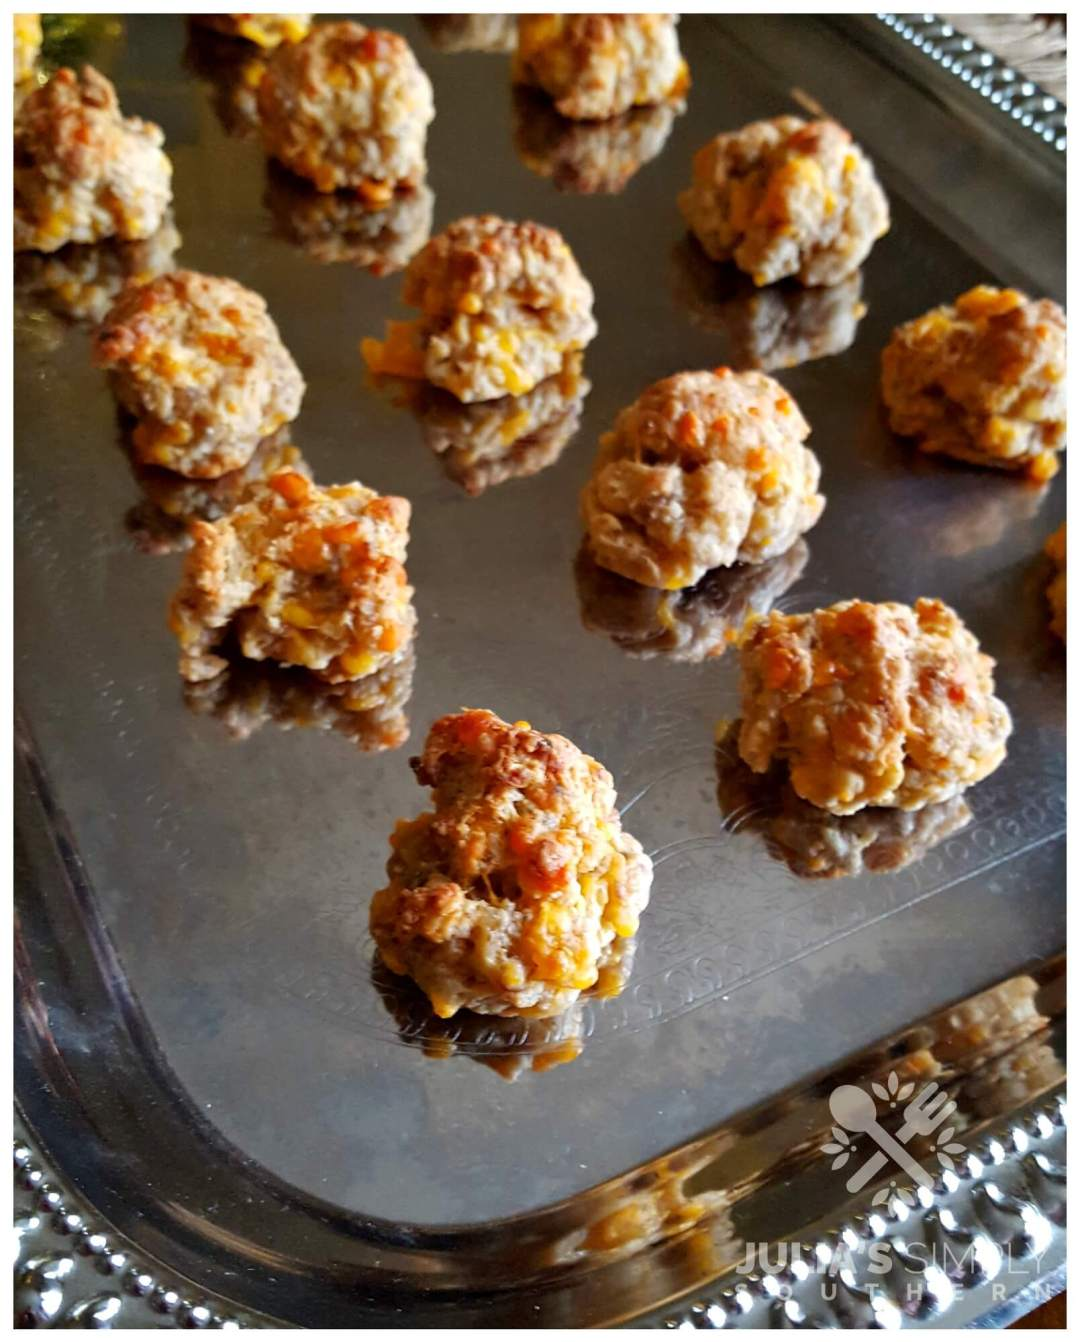 Silver tray with sausage ball appetizers